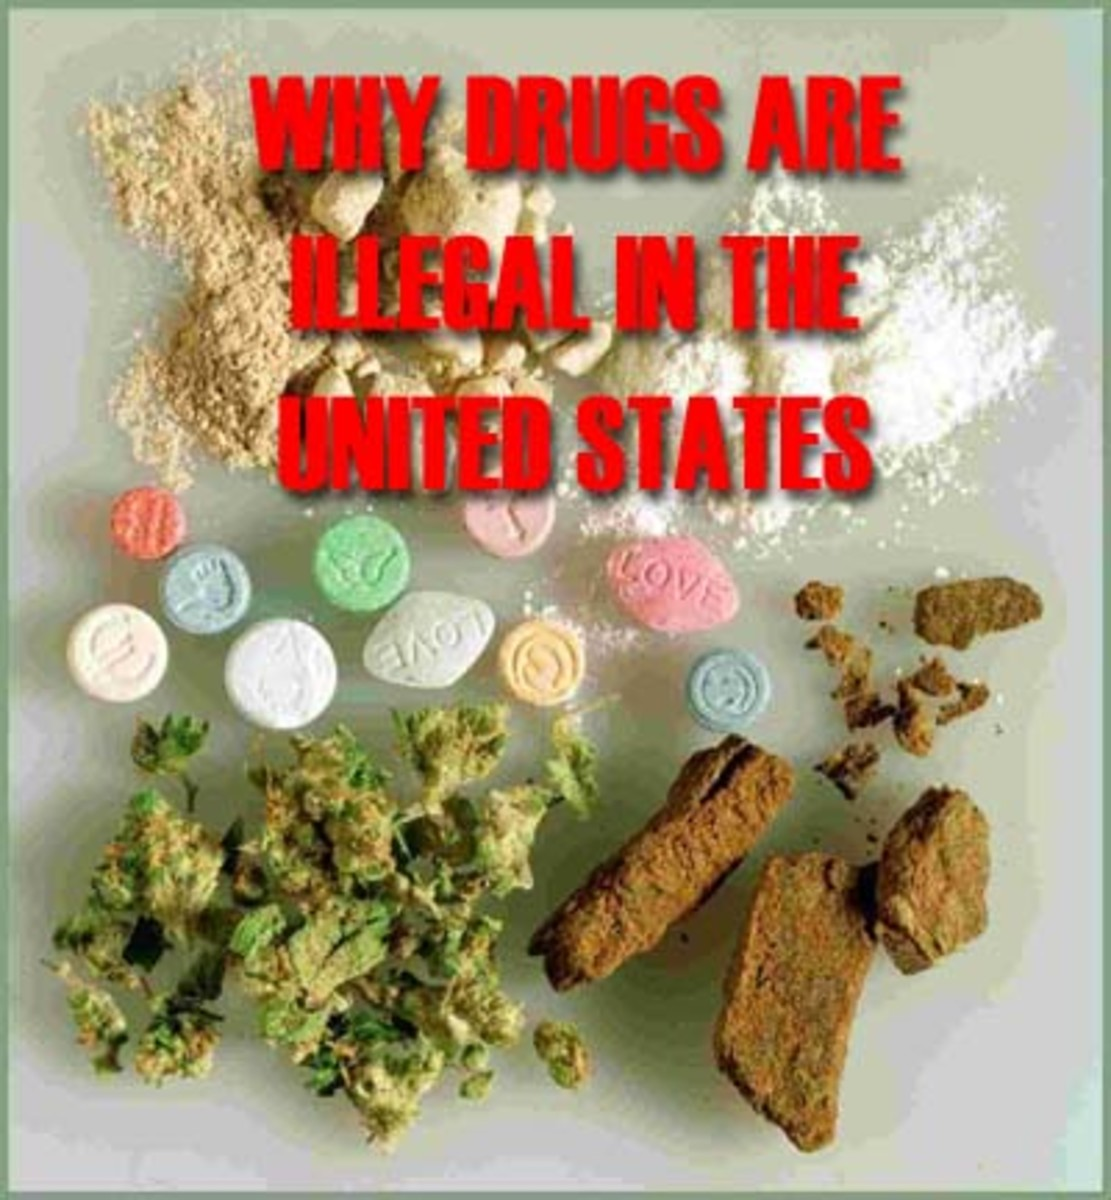 Why Are Drugs Illegal in the United States